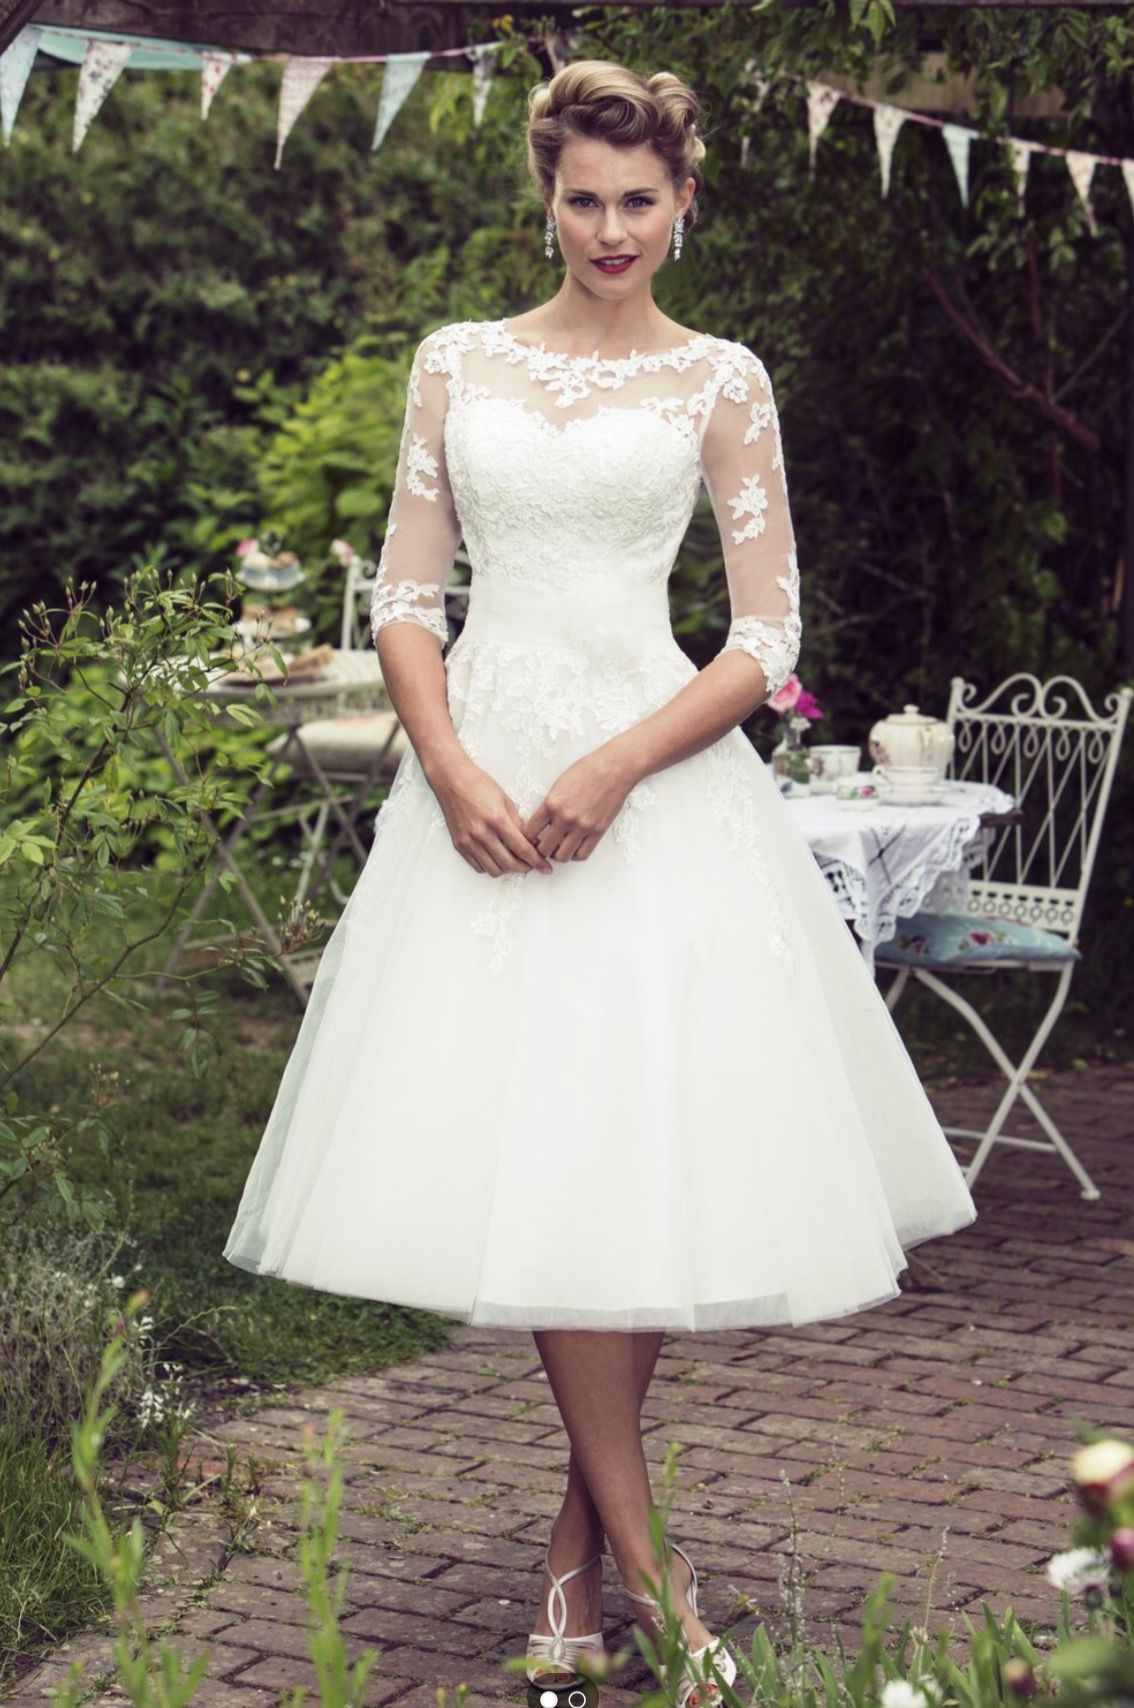 Susan Wedding Dress Helpful To See With A Rough Hair Idea